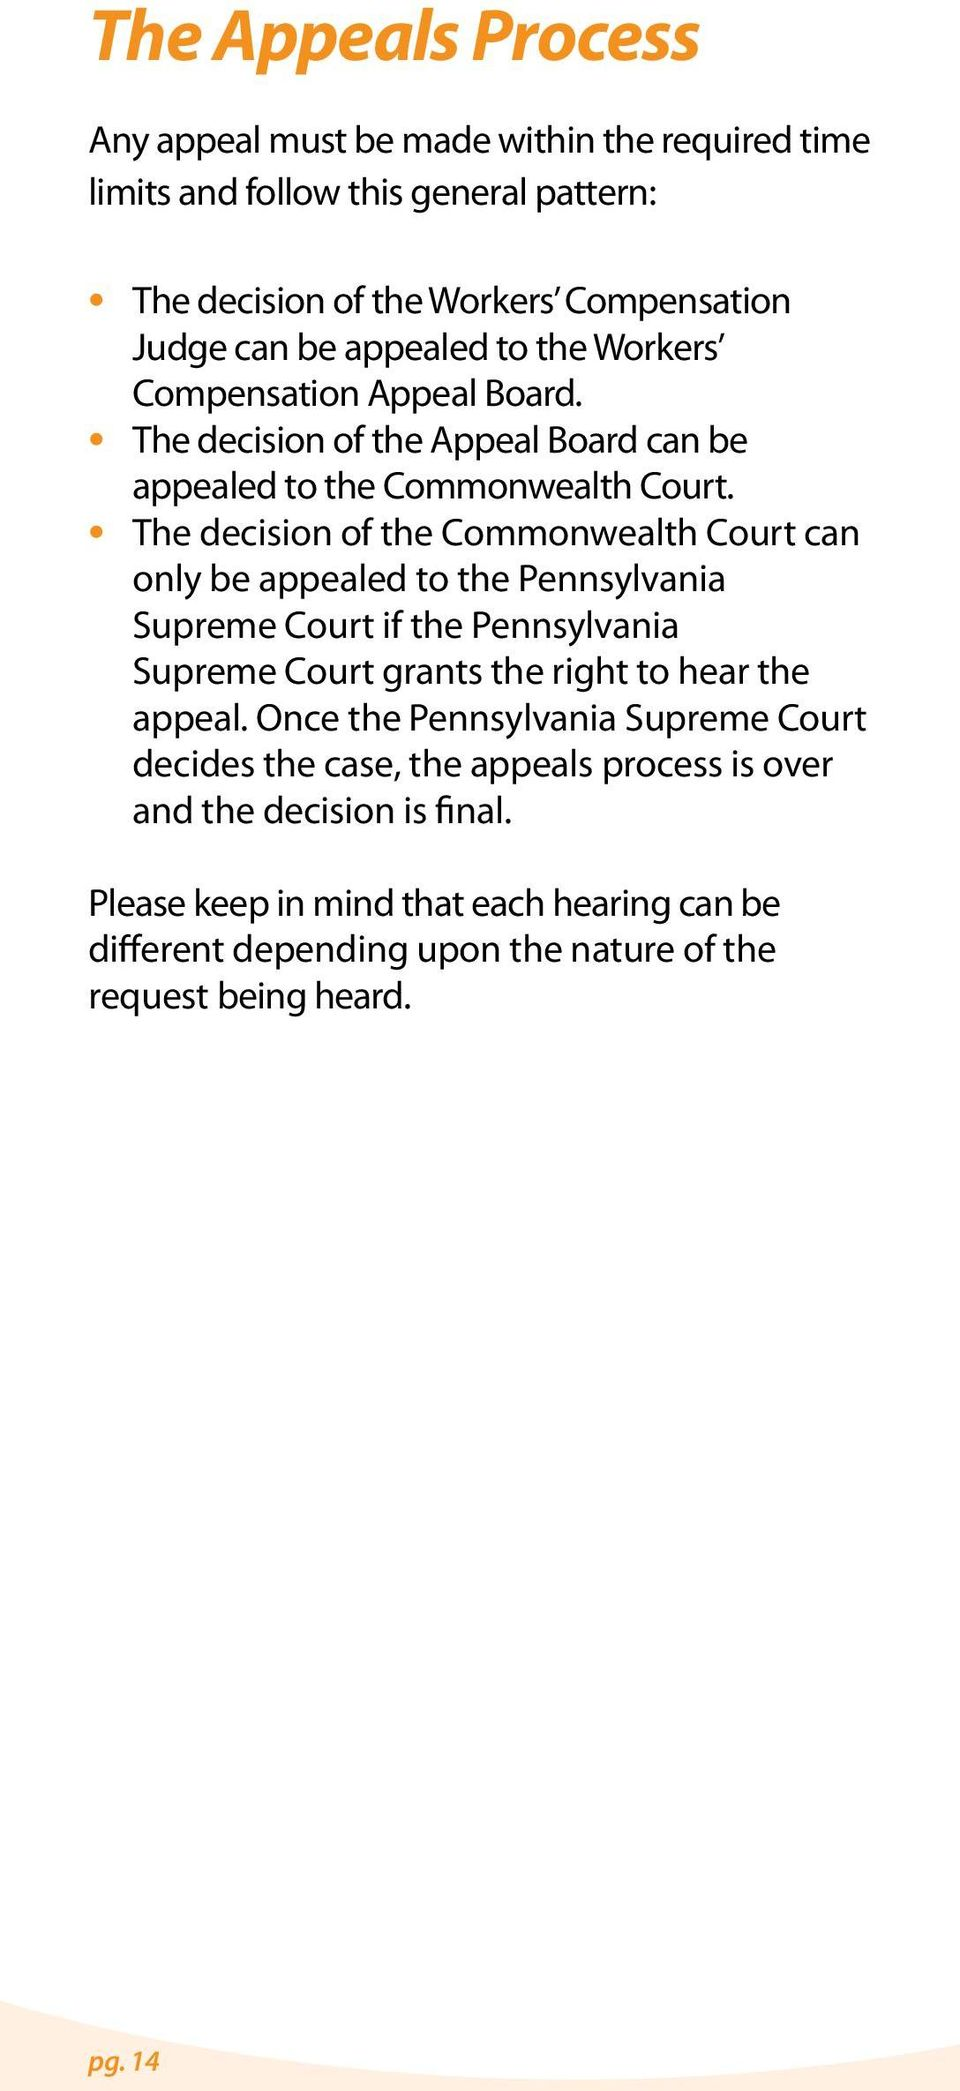 The decision of the Commonwealth Court can only be appealed to the Pennsylvania Supreme Court if the Pennsylvania Supreme Court grants the right to hear the appeal.